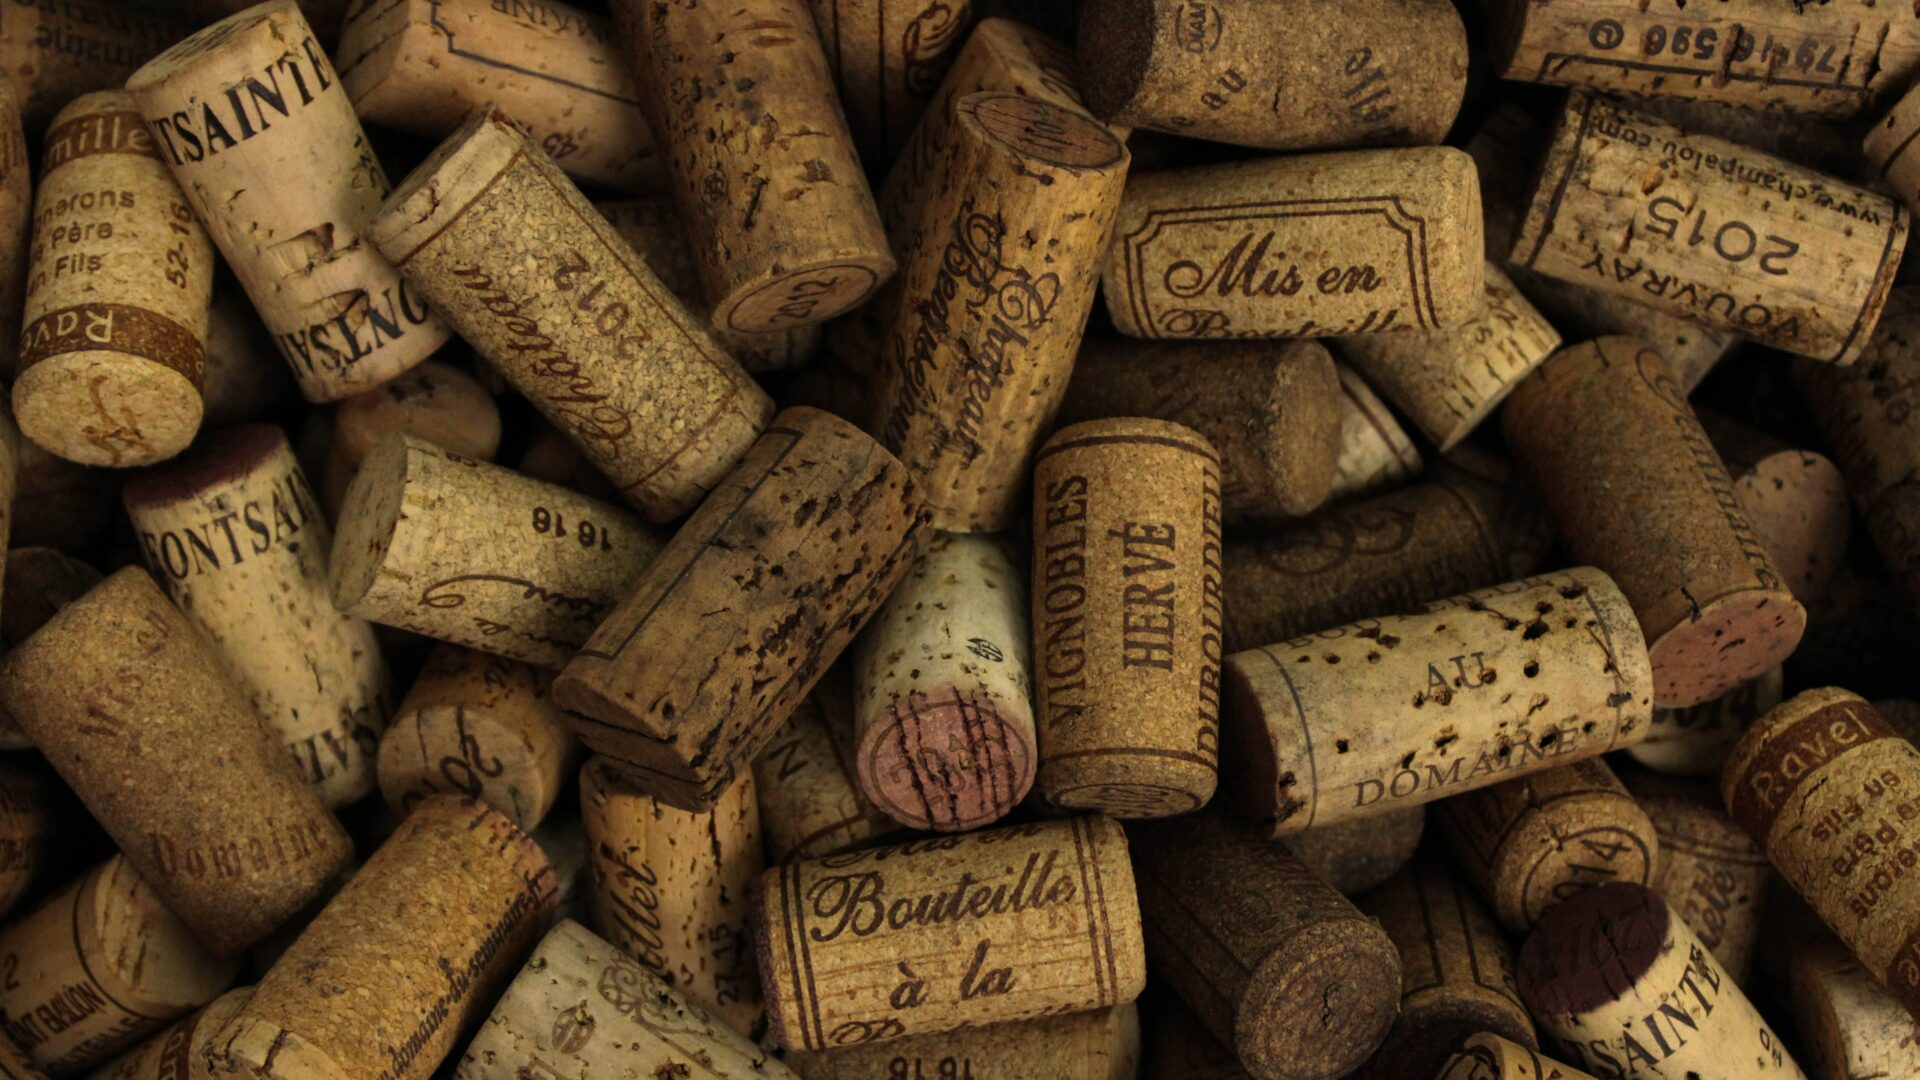 A bunch of wine corks mainly from the Bordeaux region